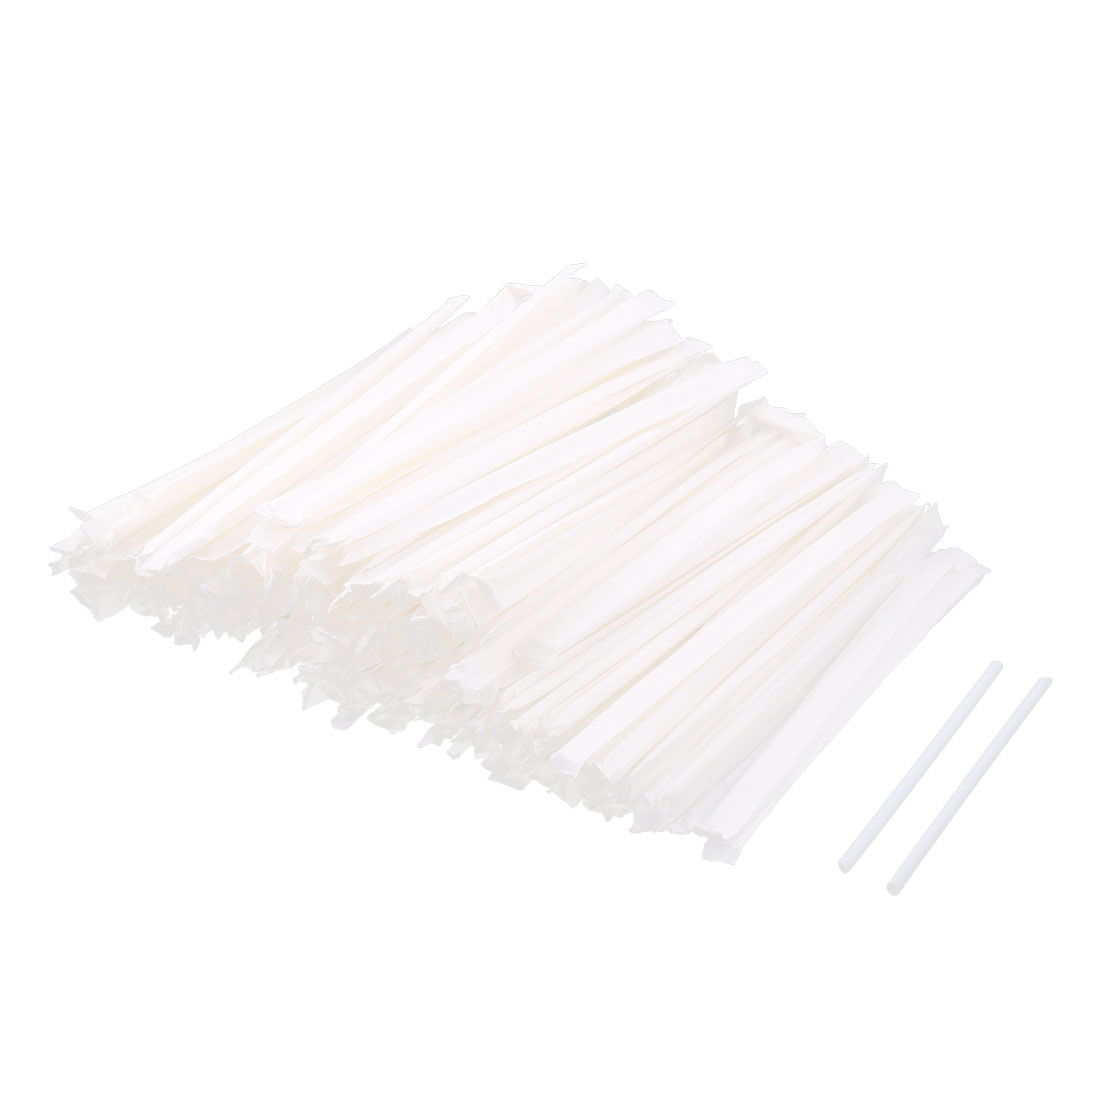 Wedding Birthday Party Plastic Juice Drink Drinking Straws White 200 Pcs